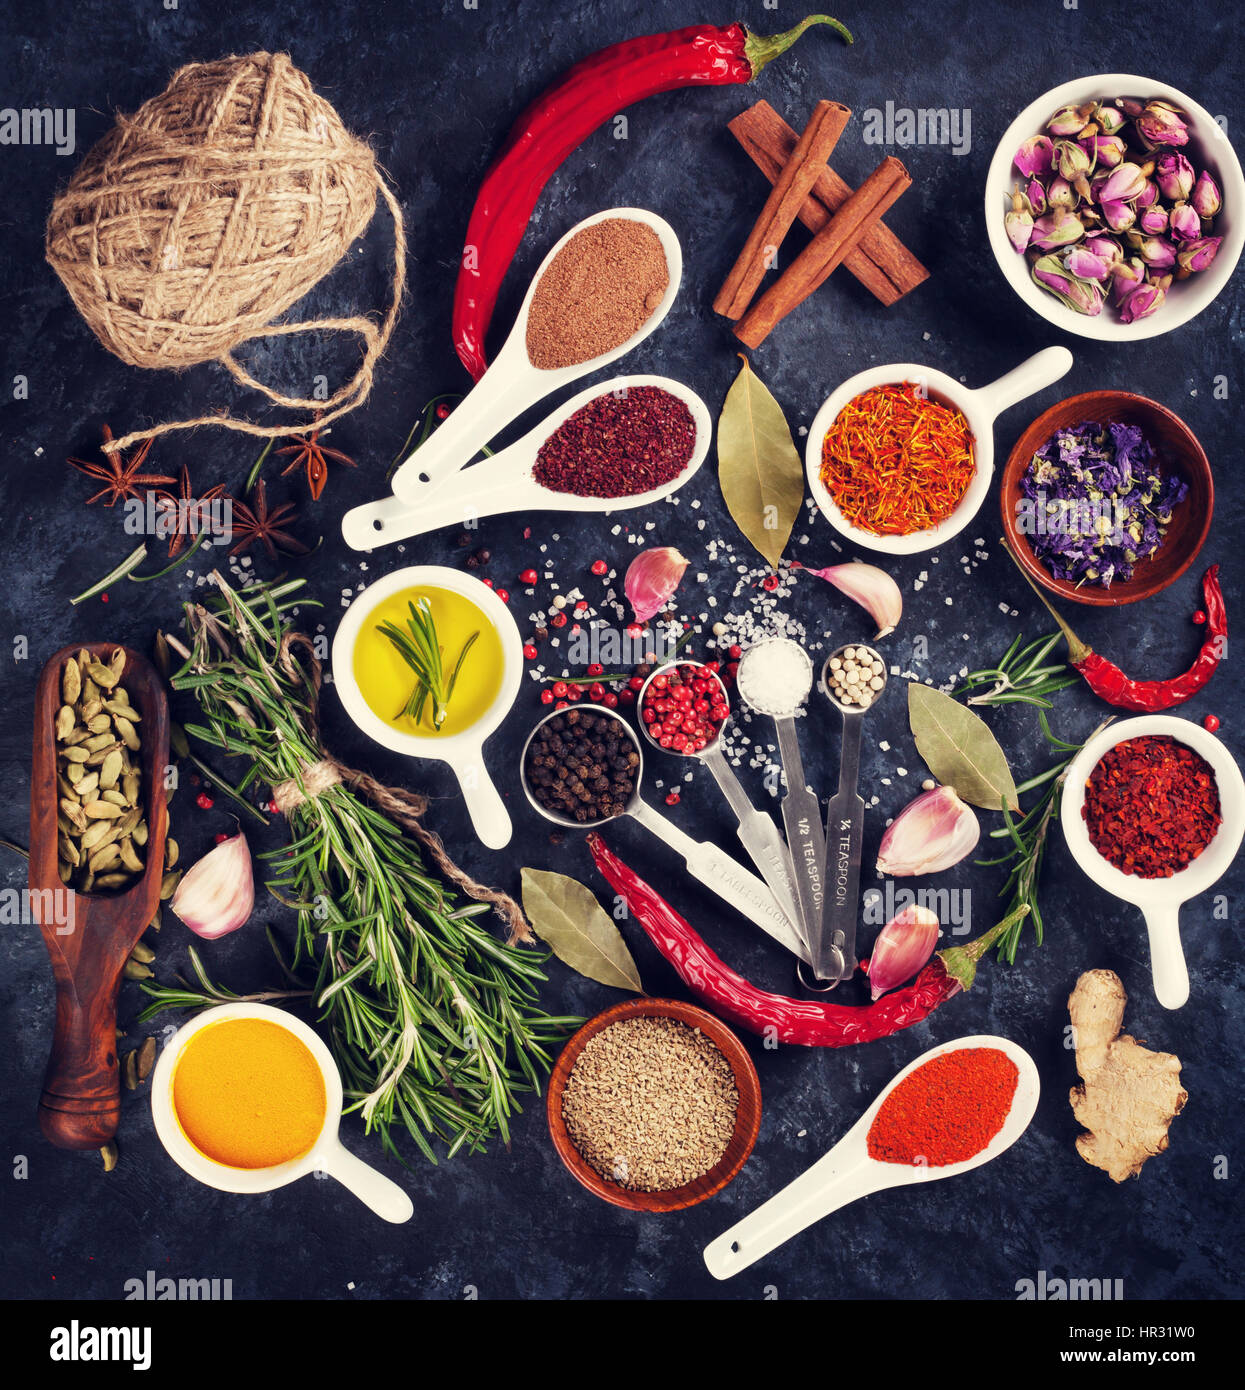 Herbs and spices over black stone background. Top view. Retro toned - Stock Image